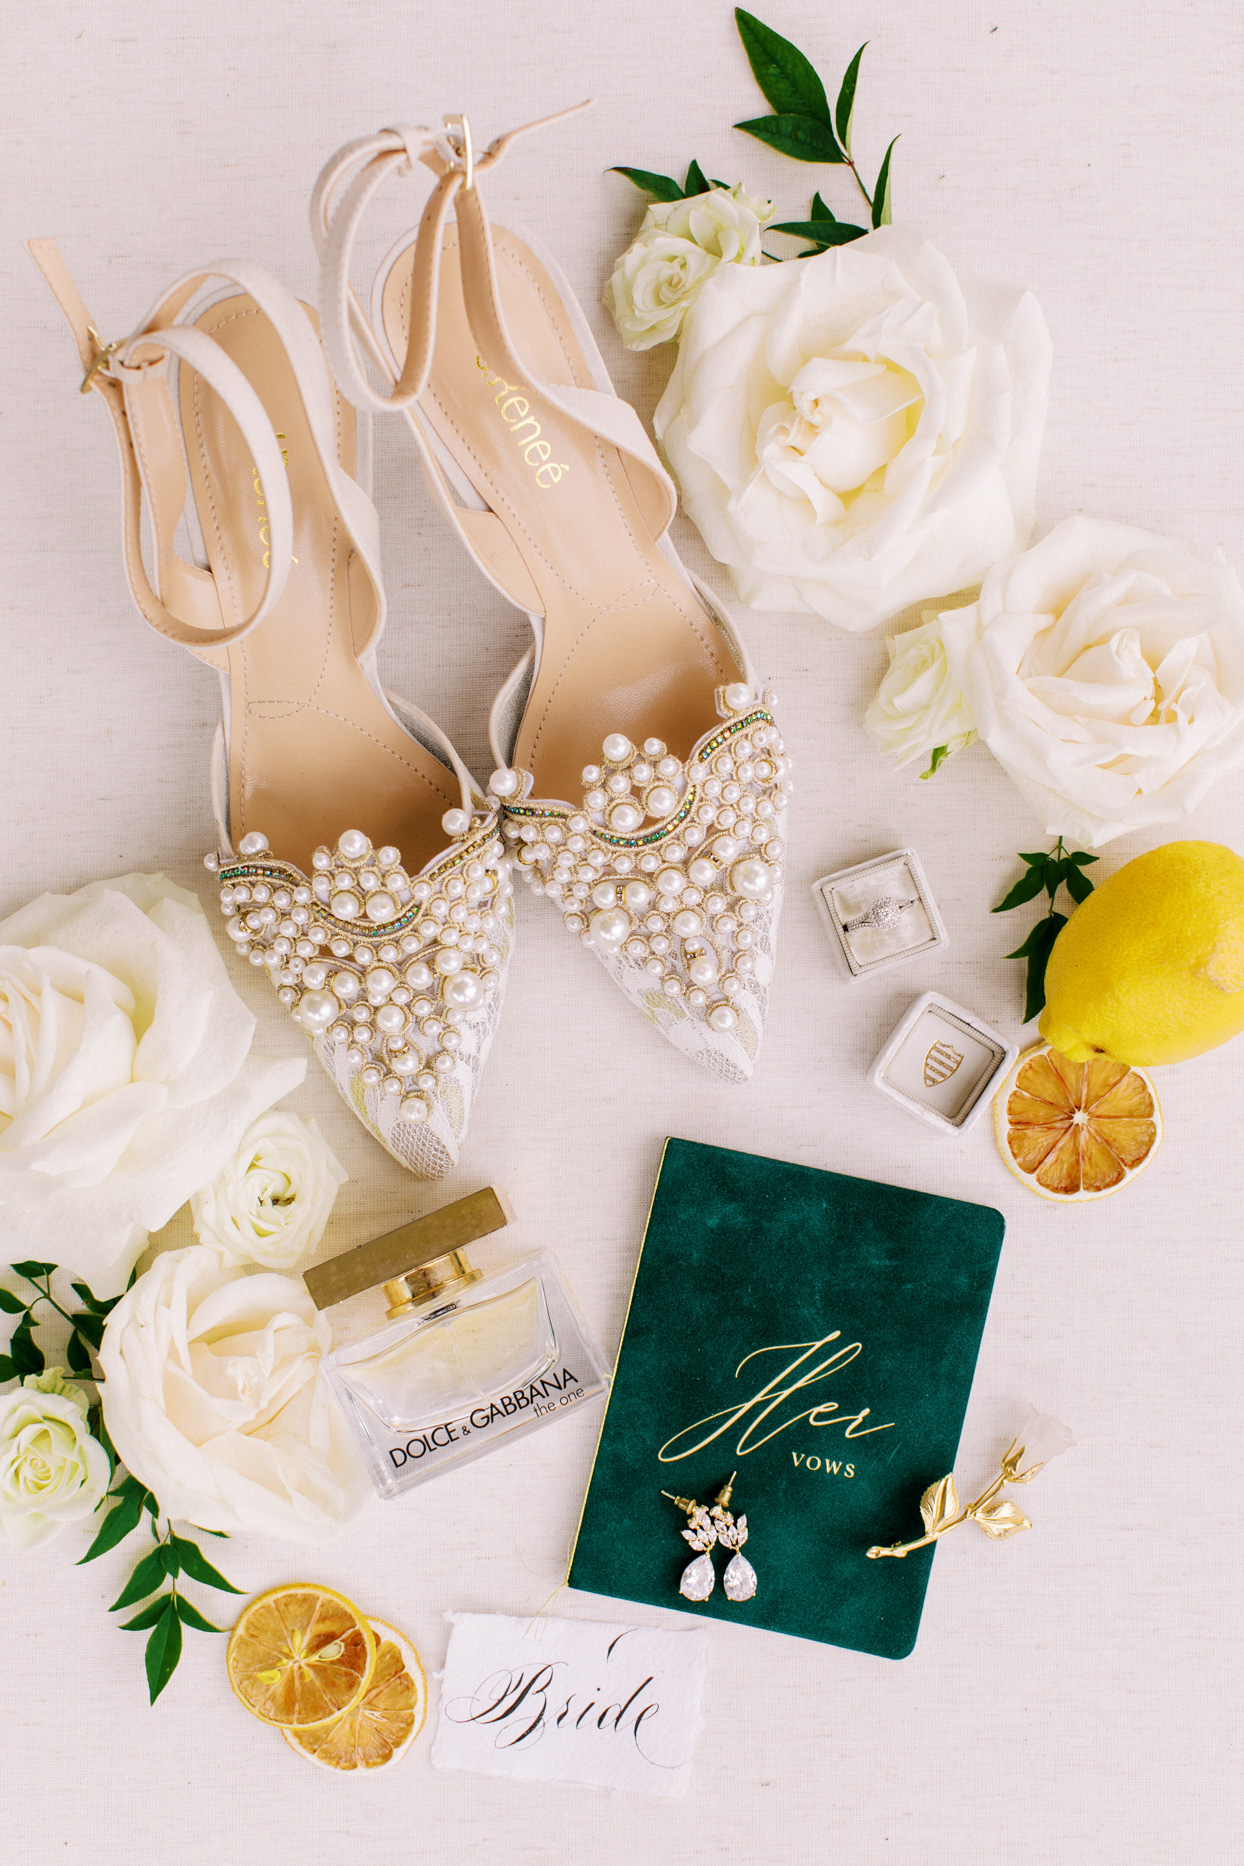 pearl detailed heels and jewelry